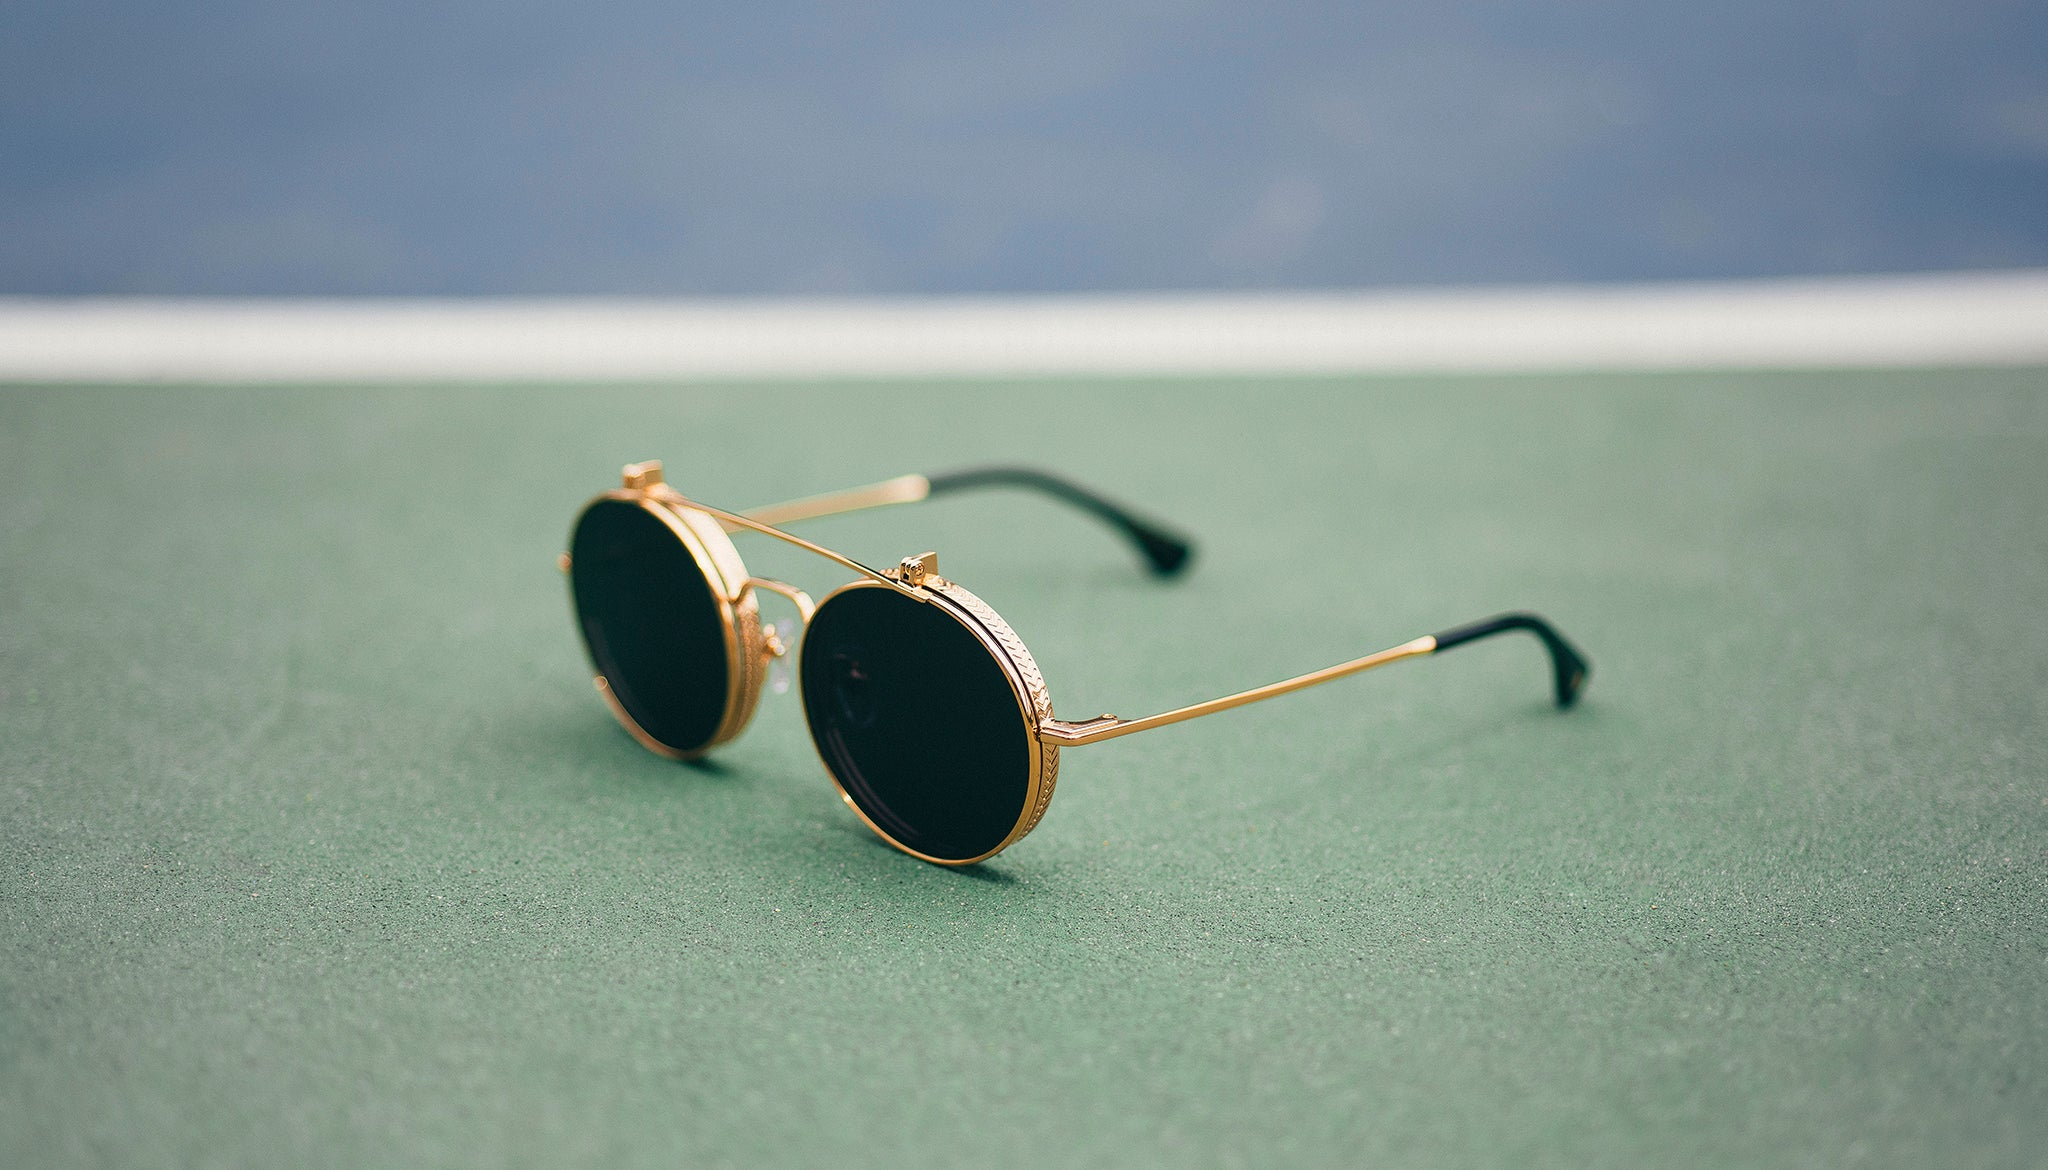 8abfacce58 9FIVE 50-50 Flip-Up 24K Gold Round Sunglasses. 9FIVE 50-50 Flip-Up 24K Gold  Round Sunglasses